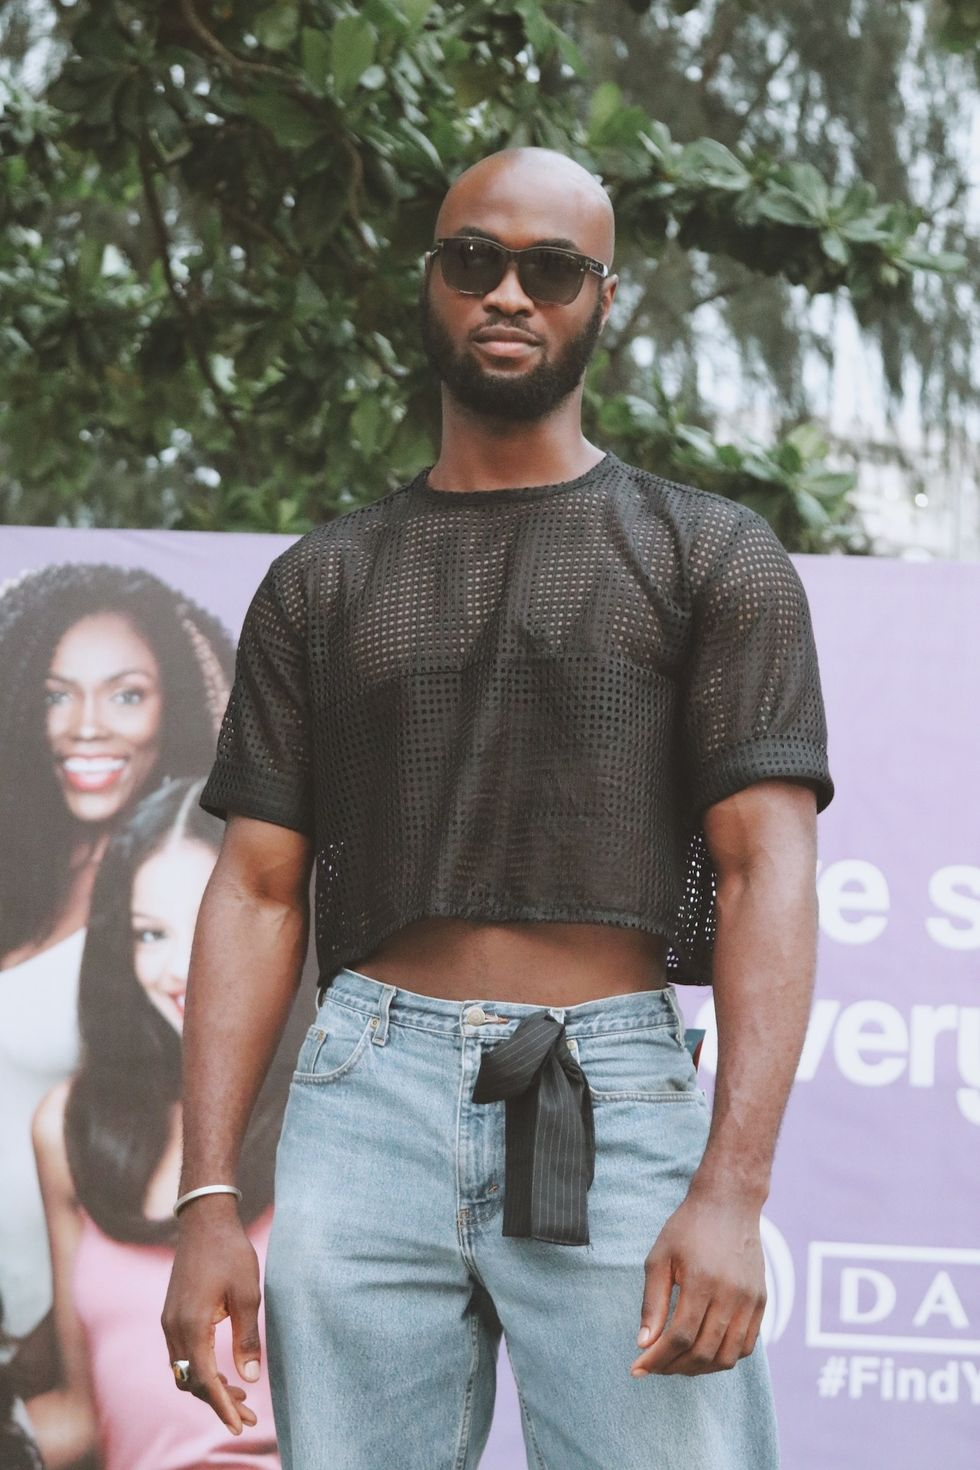 Nigerian man wearing mesh shirt during Lagos Fashion Week 2019